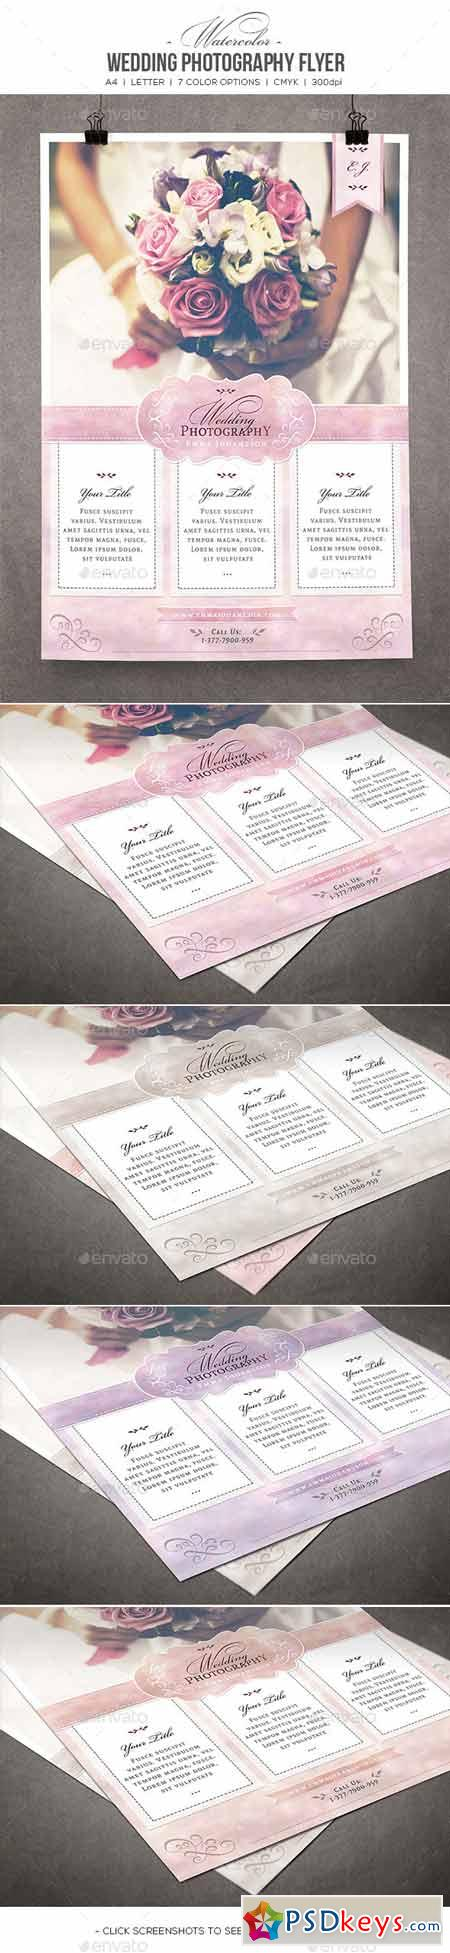 Watercolor Wedding Photography Flyer 10573483